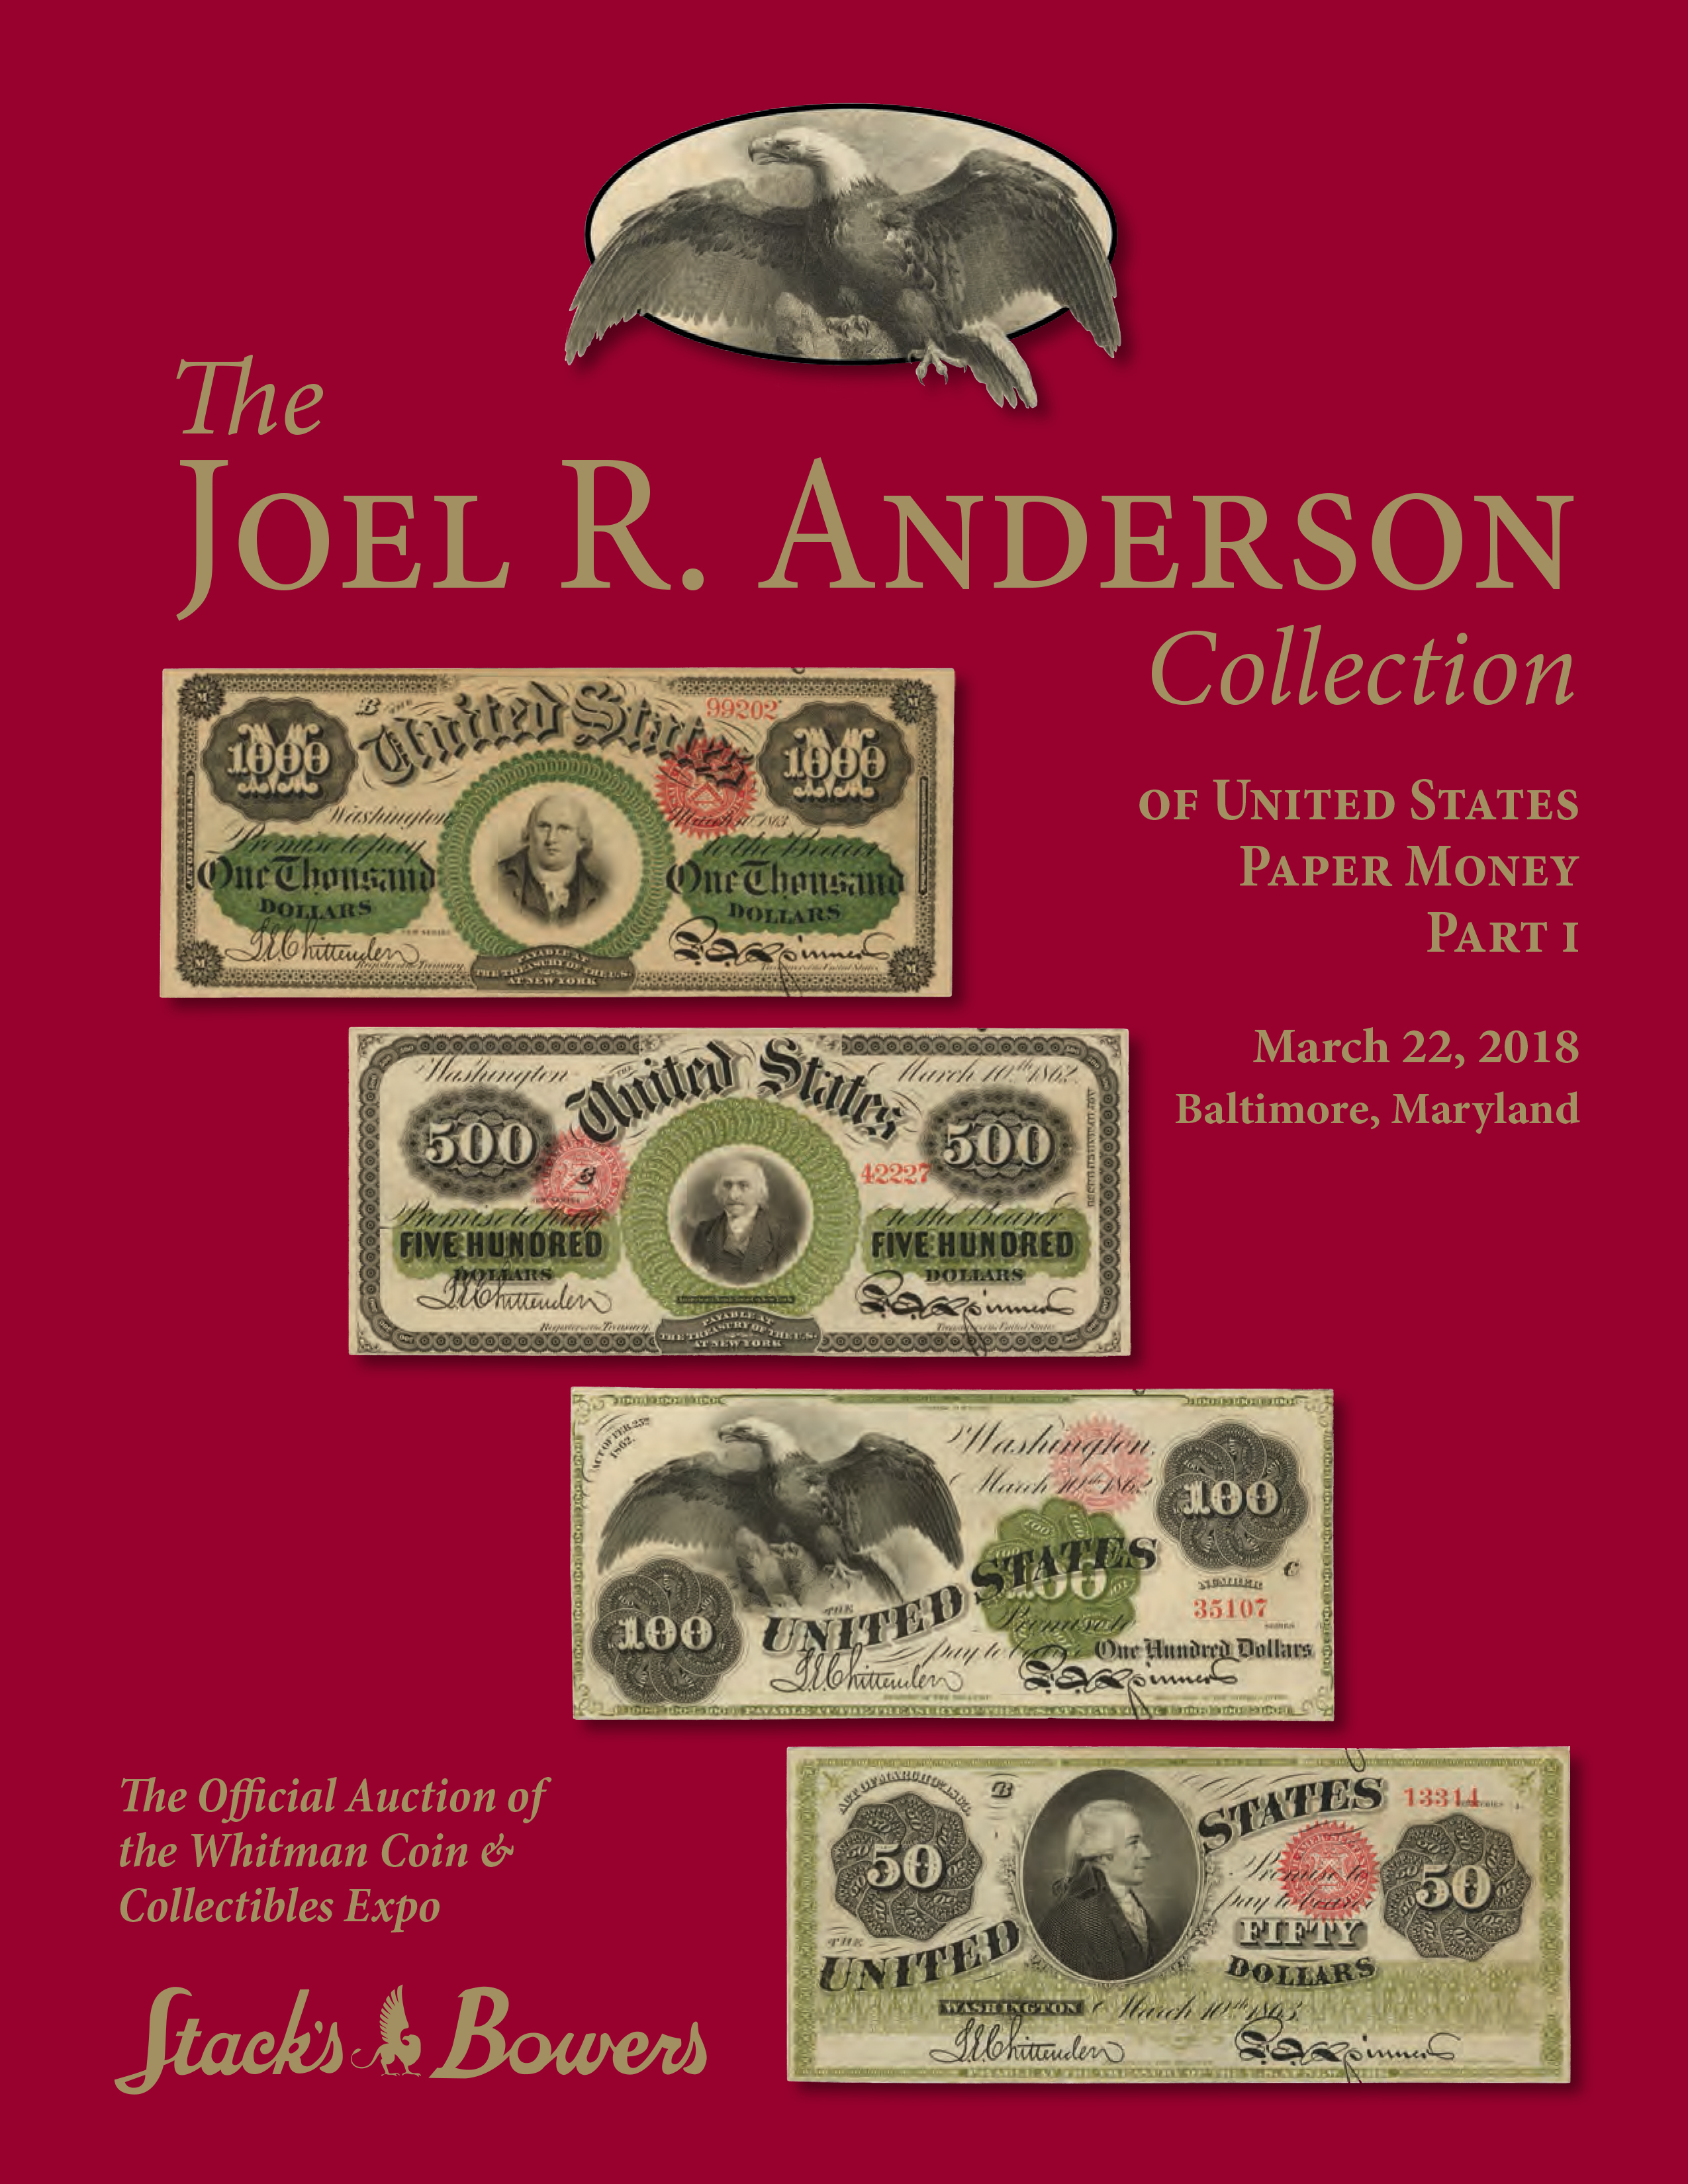 The Joel R. Anderson Collection of United States Paper Money Part I